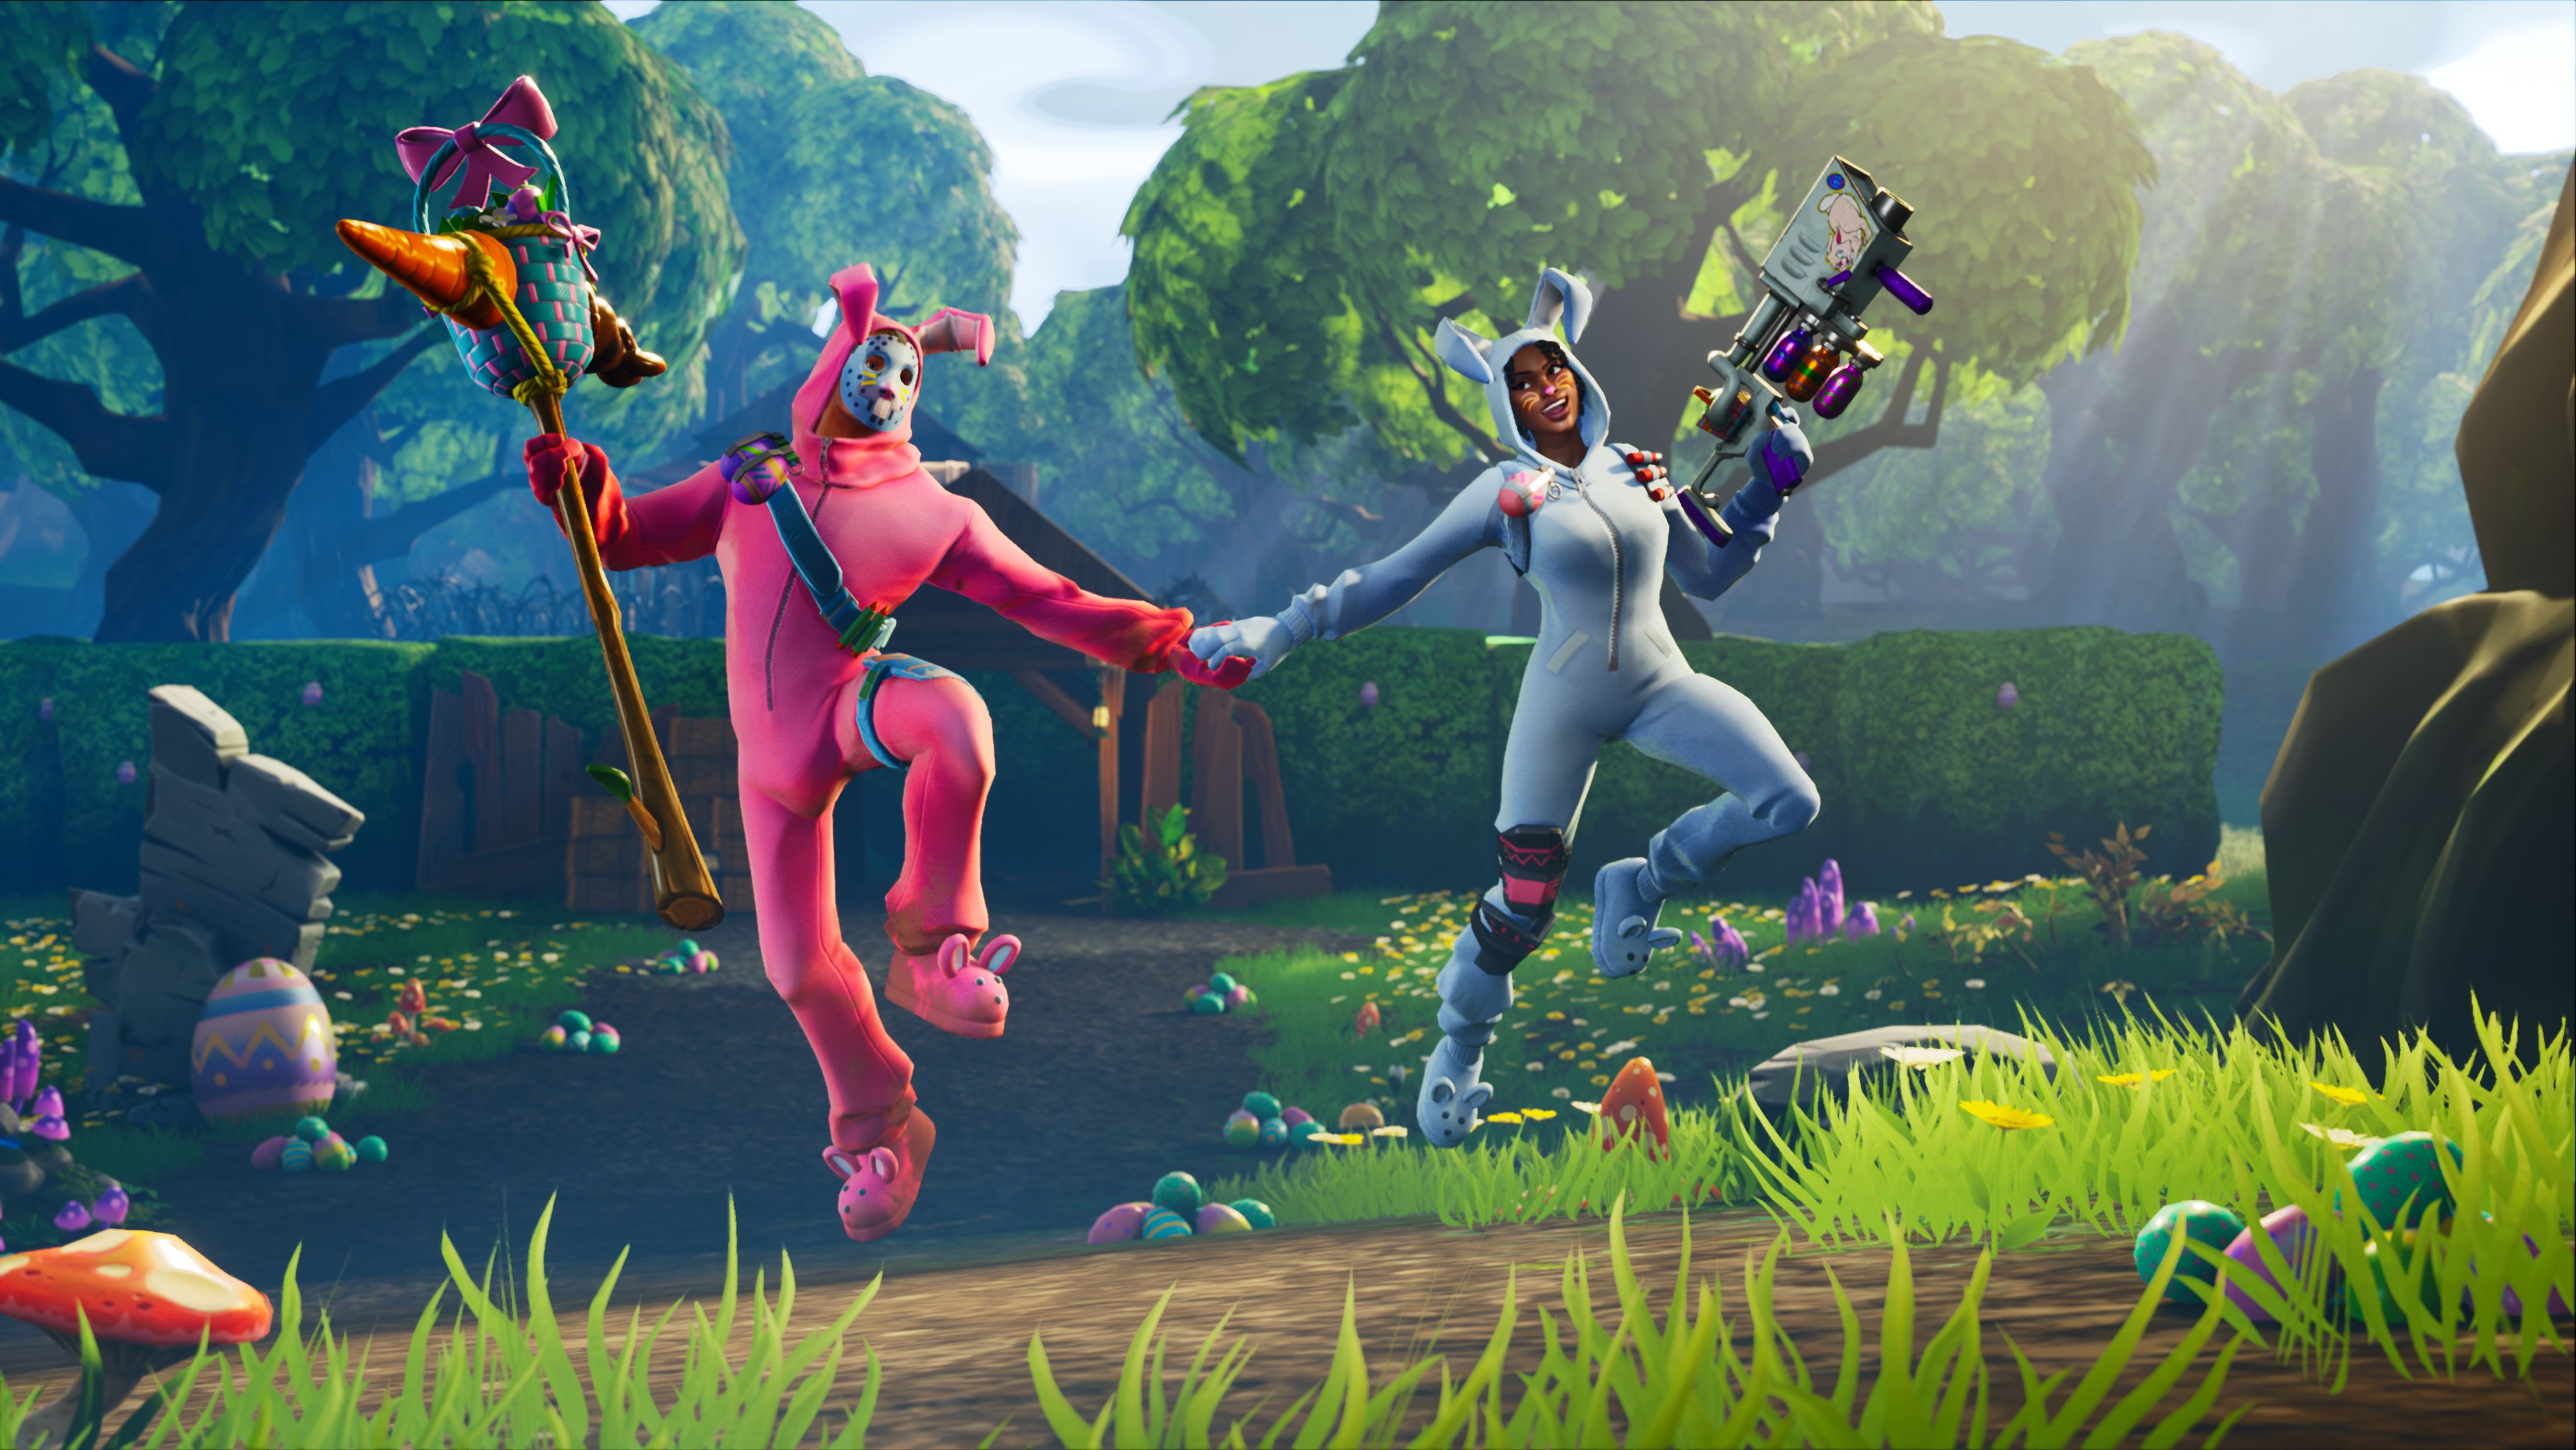 Fortnite Easter Eggs For Season 5 Involve Old Mascots Hints Of New